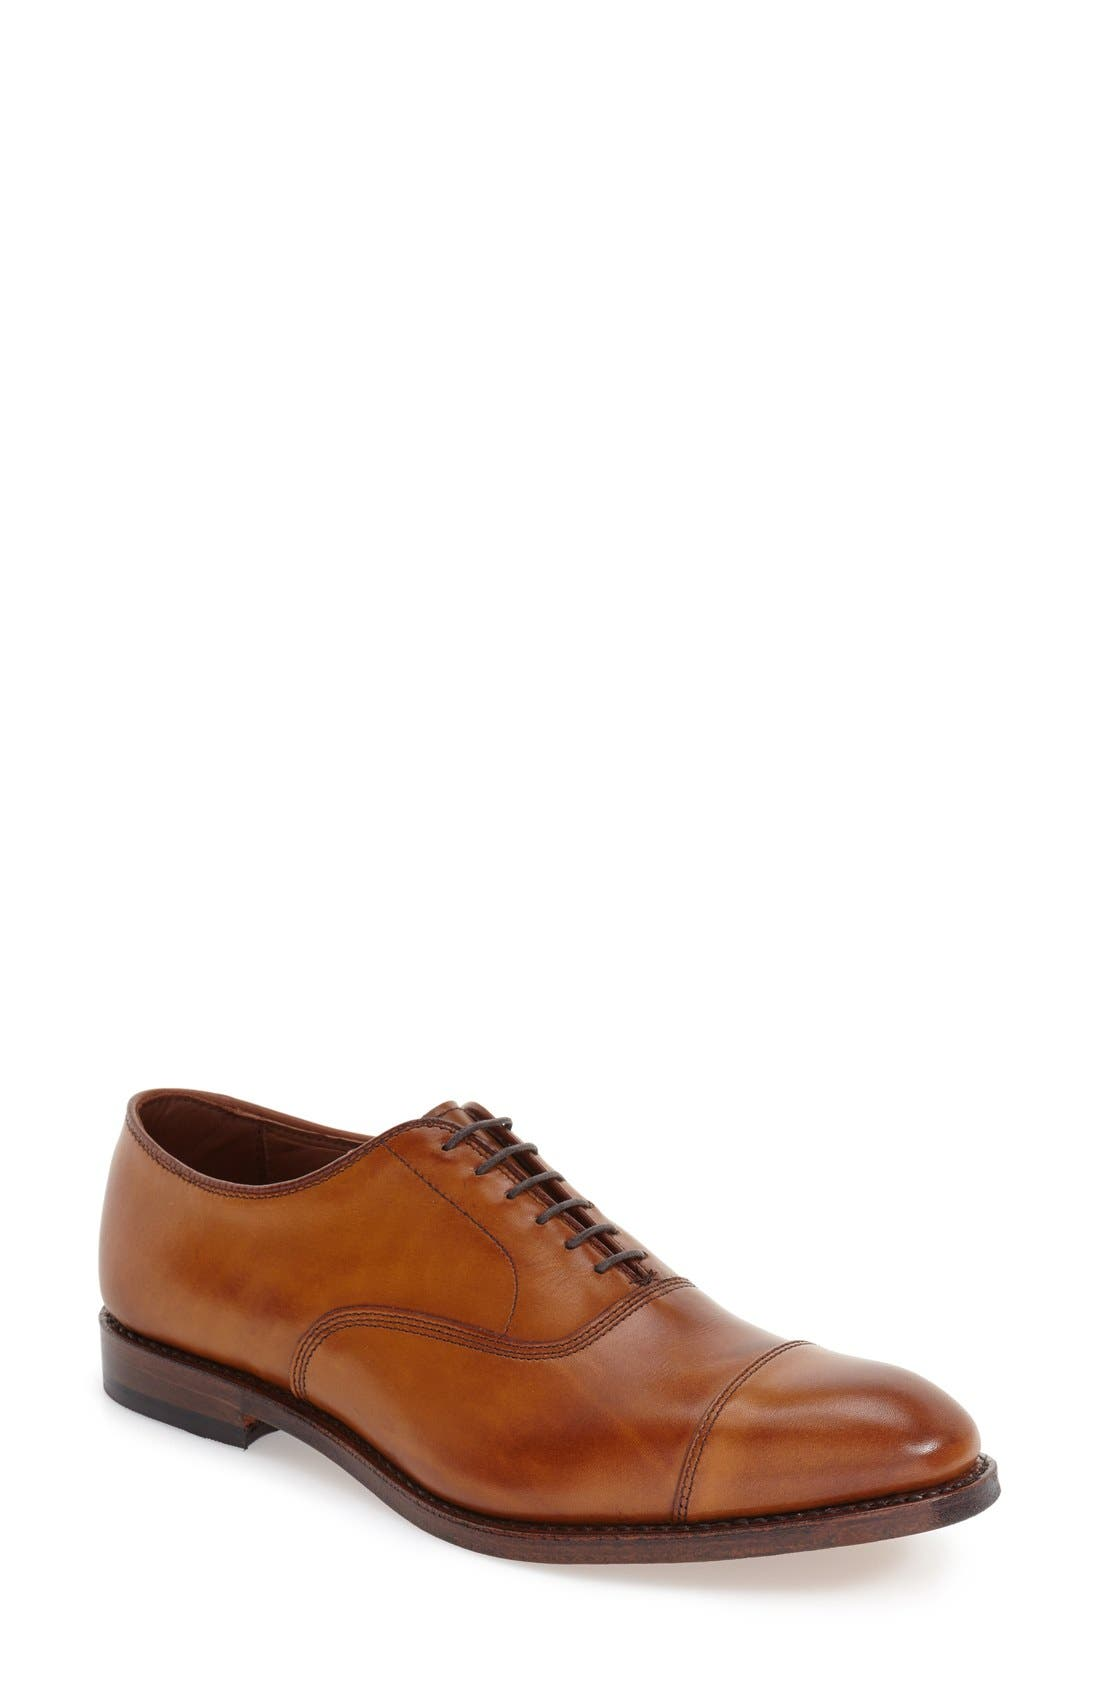 ALLEN EDMONDS 'Park Avenue' Cap Toe Oxford, Main, color, 212